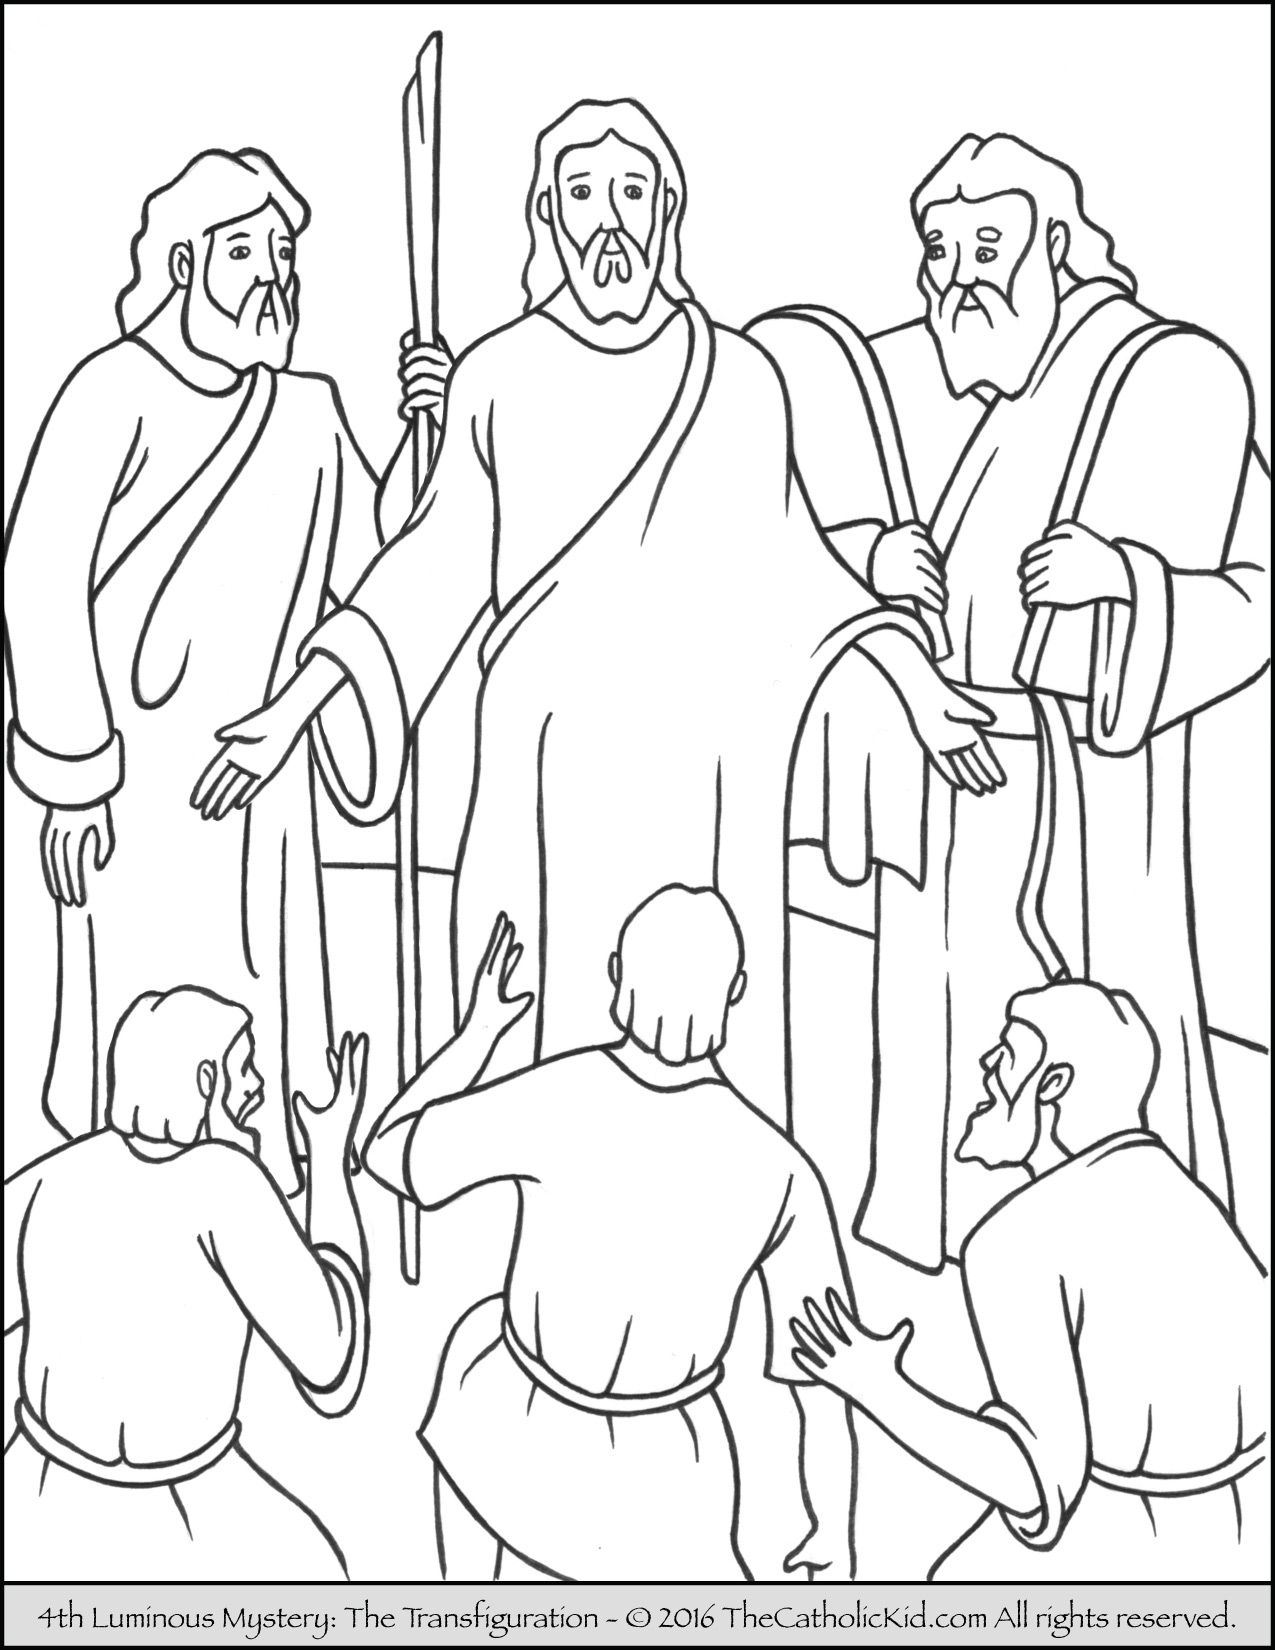 The 4th Luminous Mystery Coloring Page – The Transfiguration ...